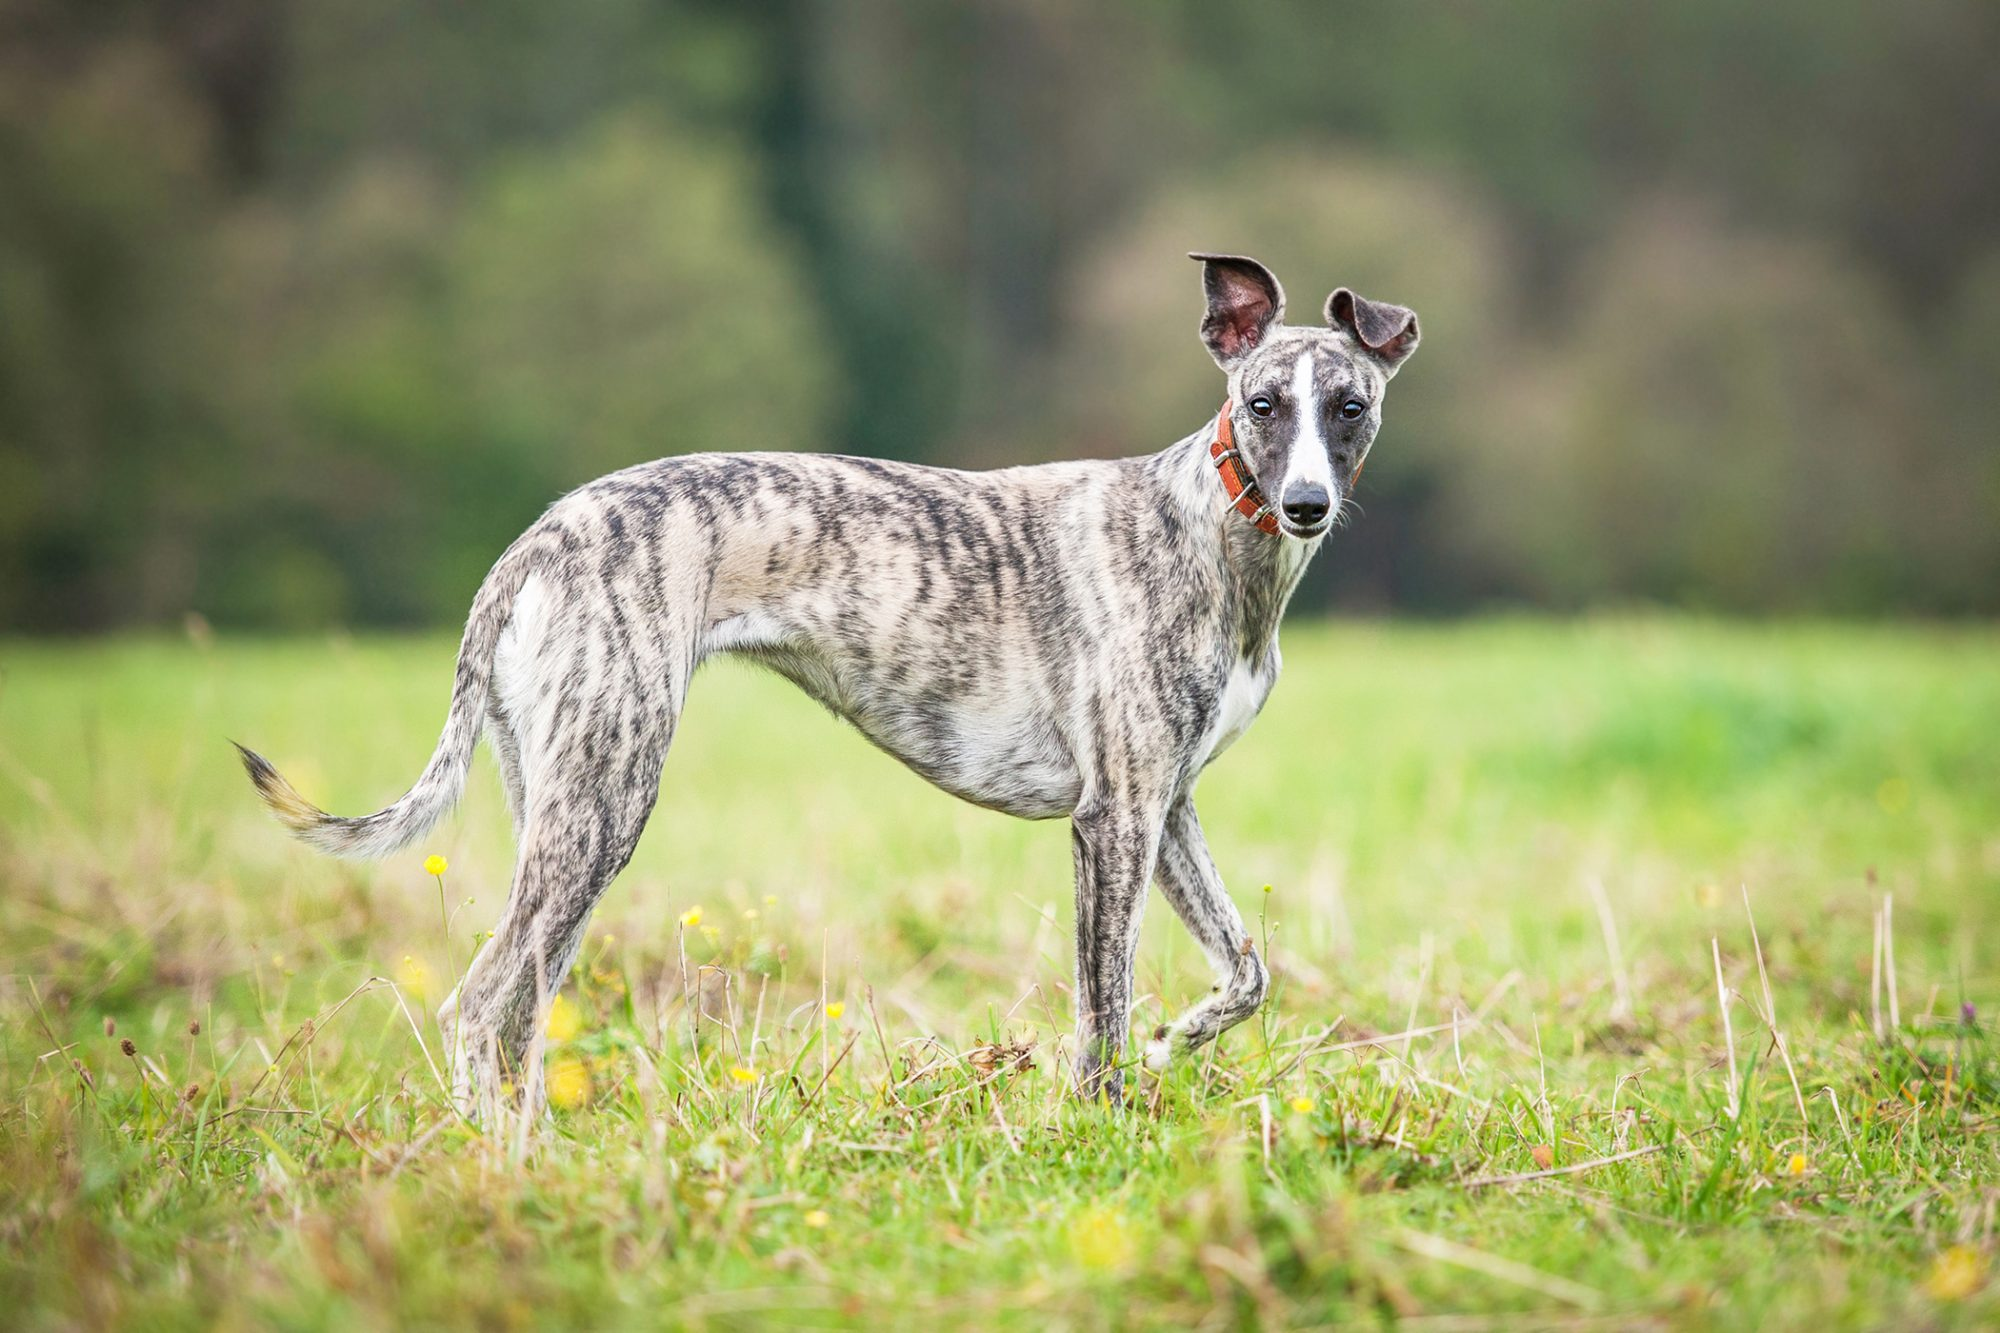 Whippet dog walking in field